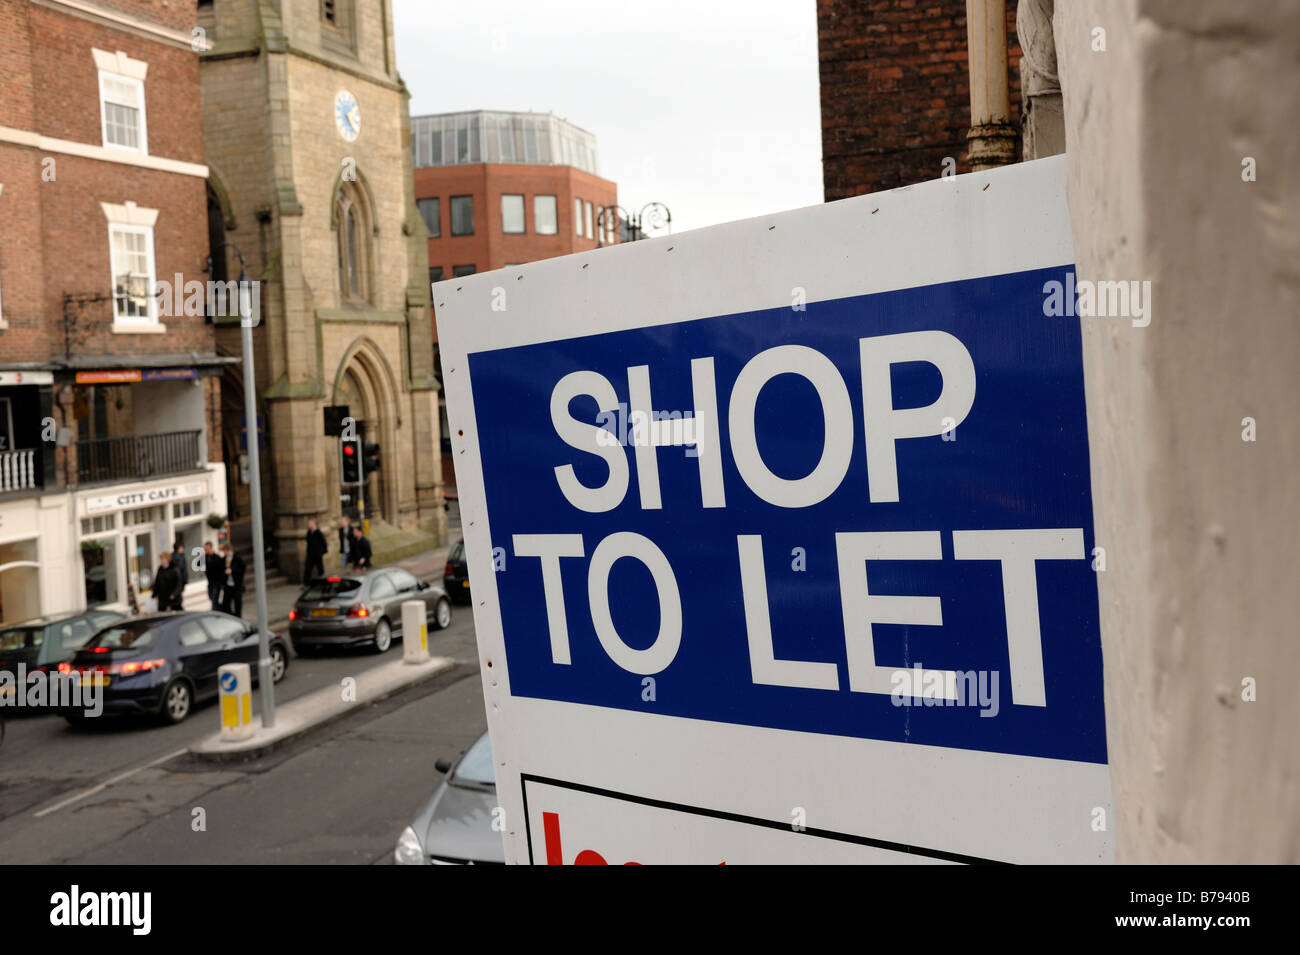 Shop To Let sign - Stock Image